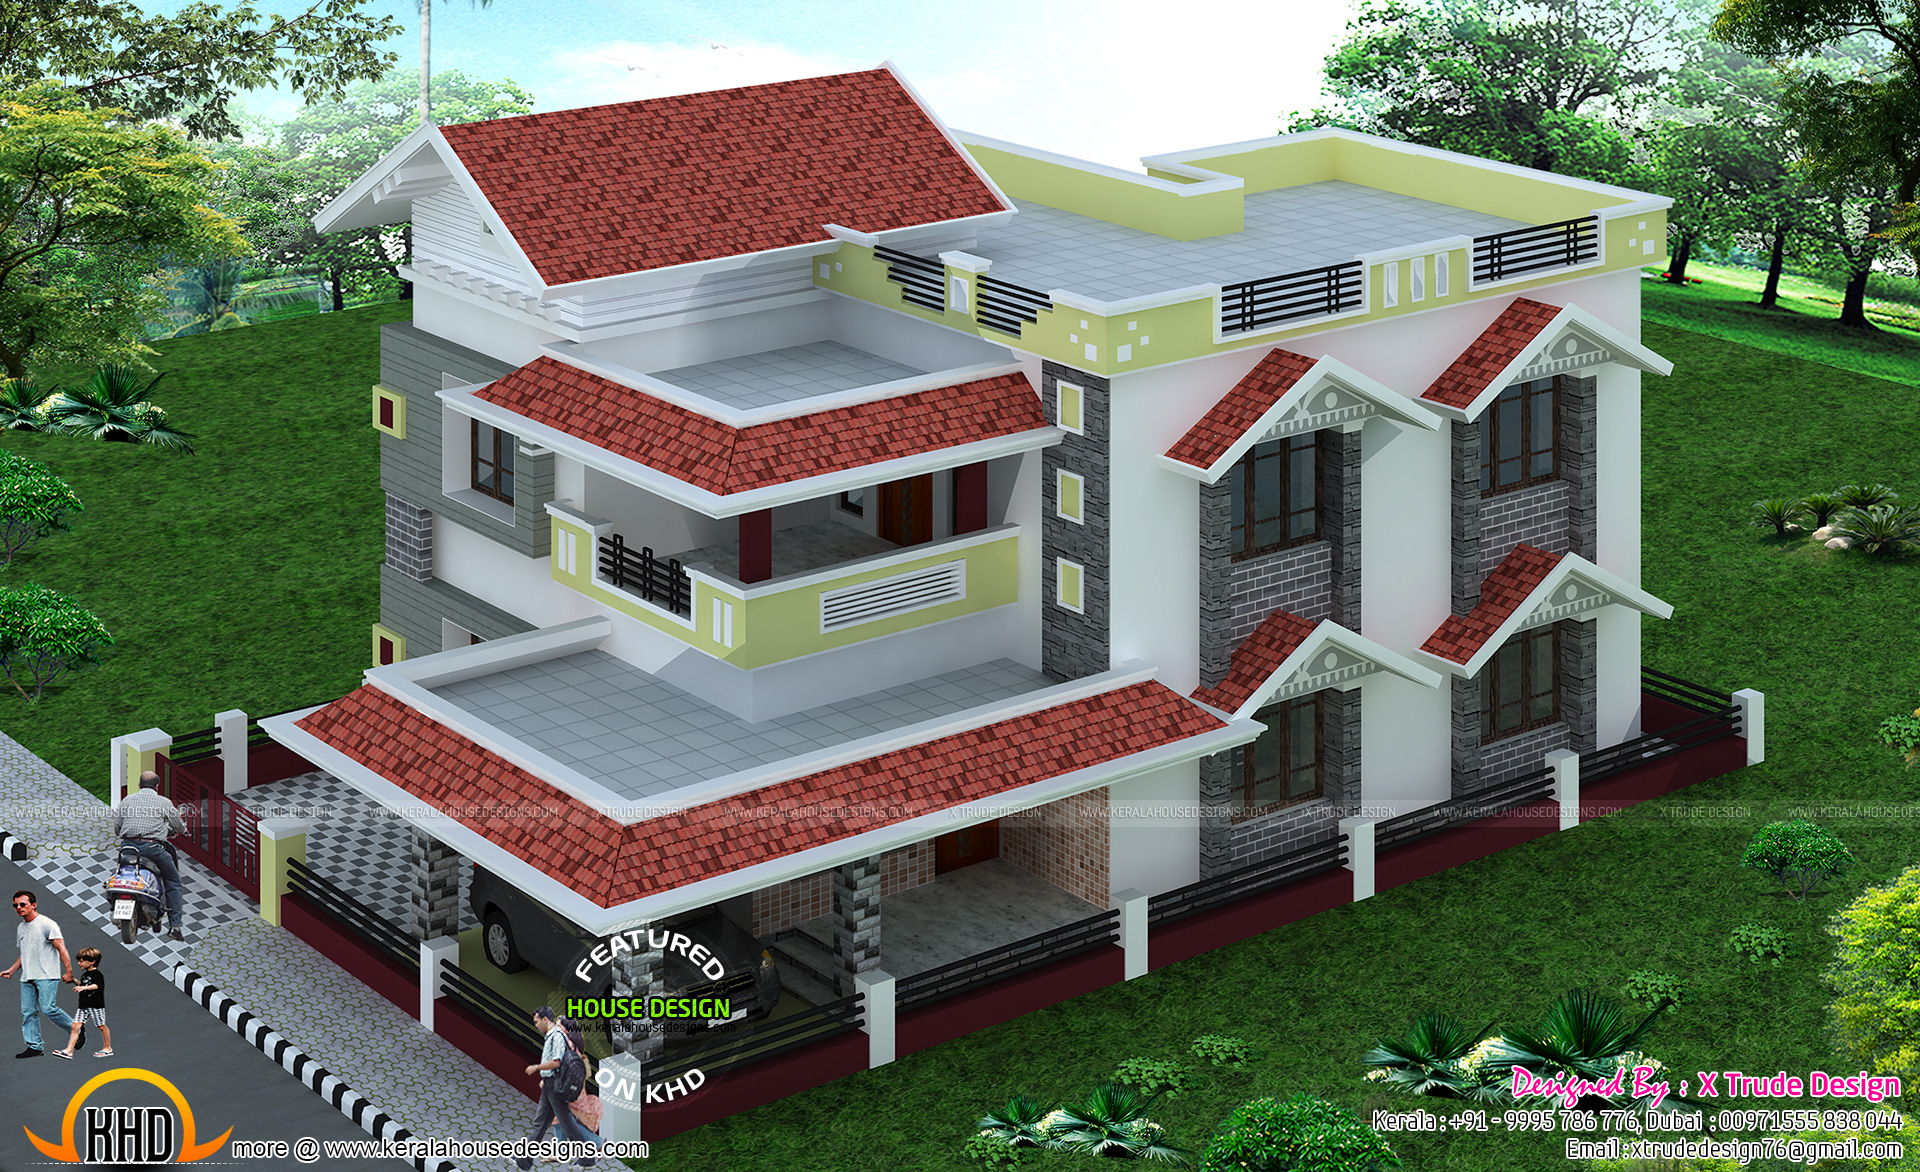 2581 sq ft house by x trude design kerala home design for Best home design images